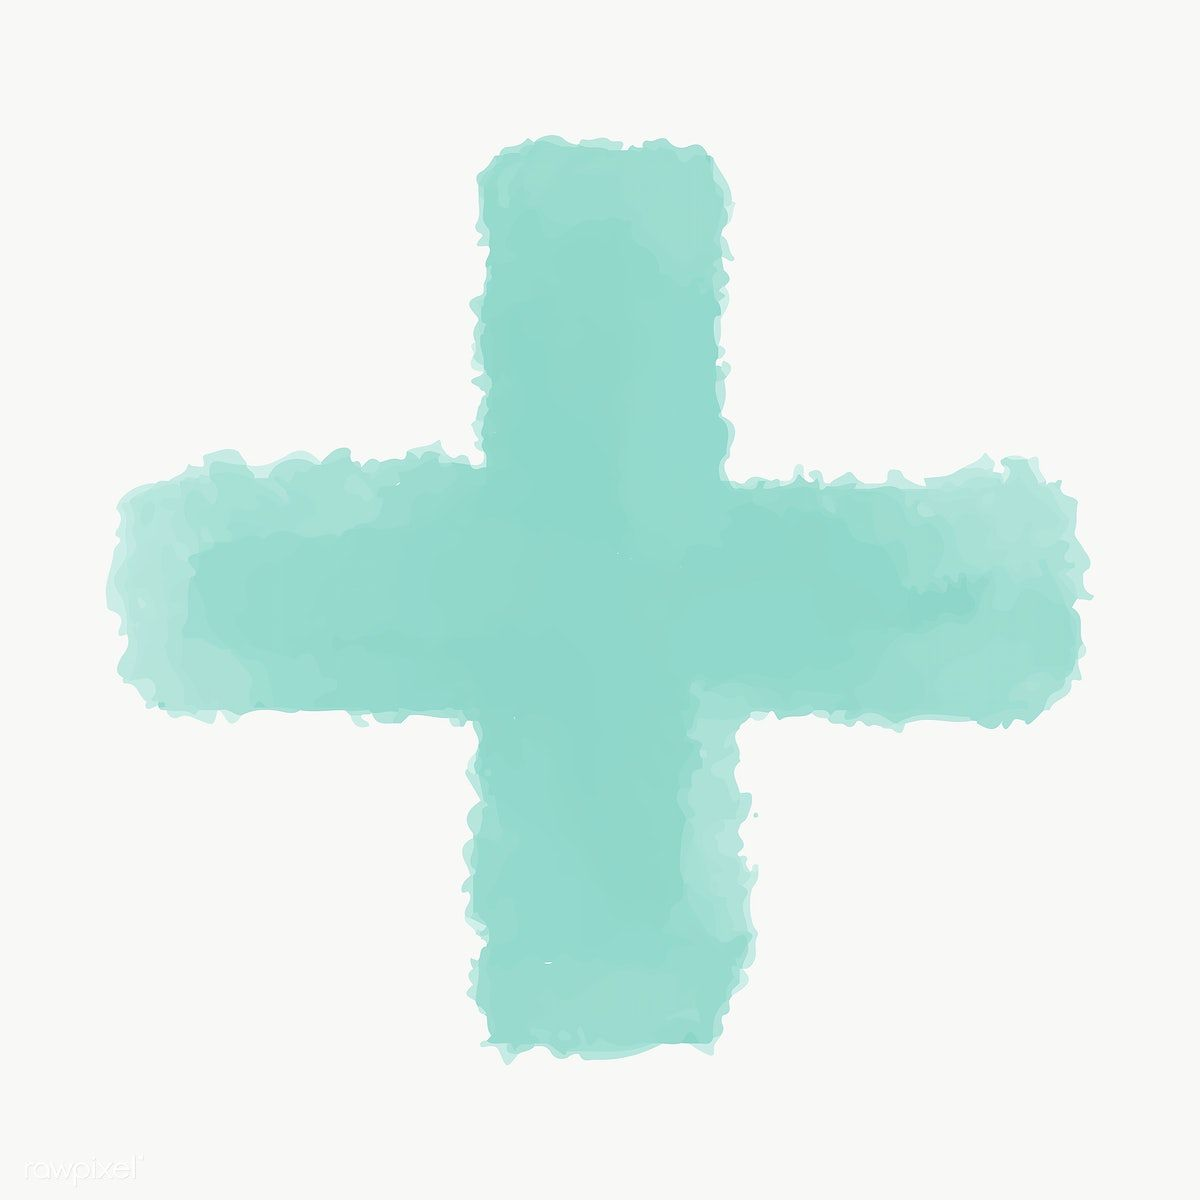 Green Watercolor Cross Geometric Shape Transparent Png Free Image By Rawpixel Com Ningzk V Green Watercolor Geometric Shapes Watercolor Heart